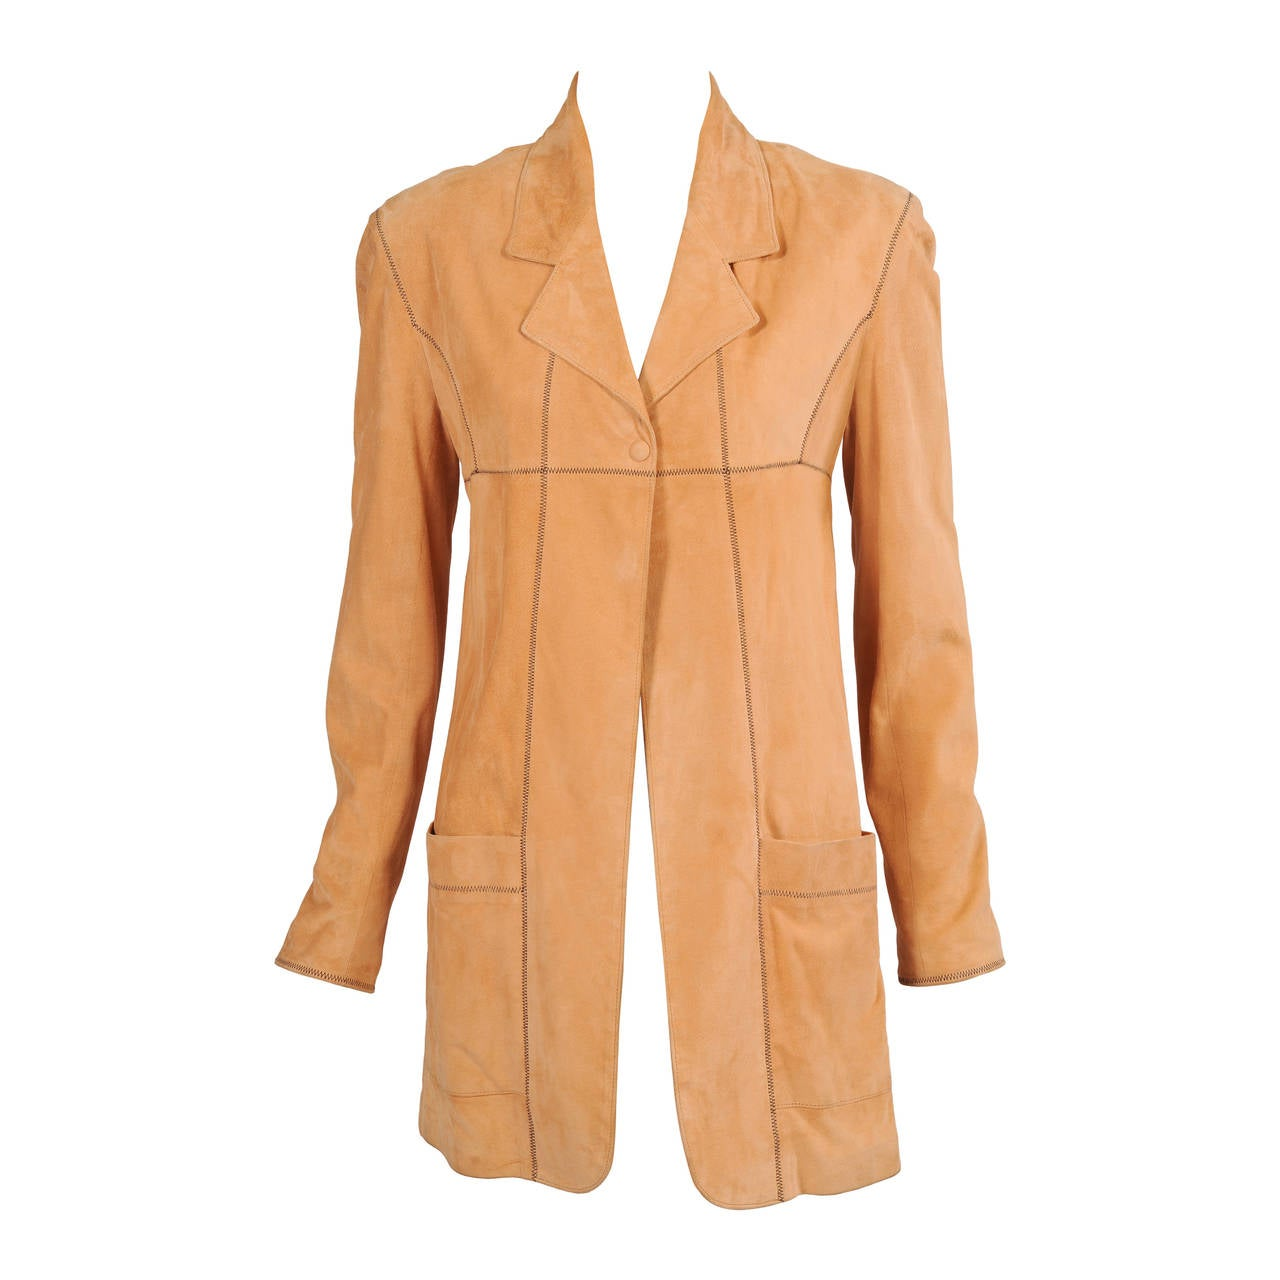 Karl Lagerfeld Butter Soft Caramel Colored Suede Jacket